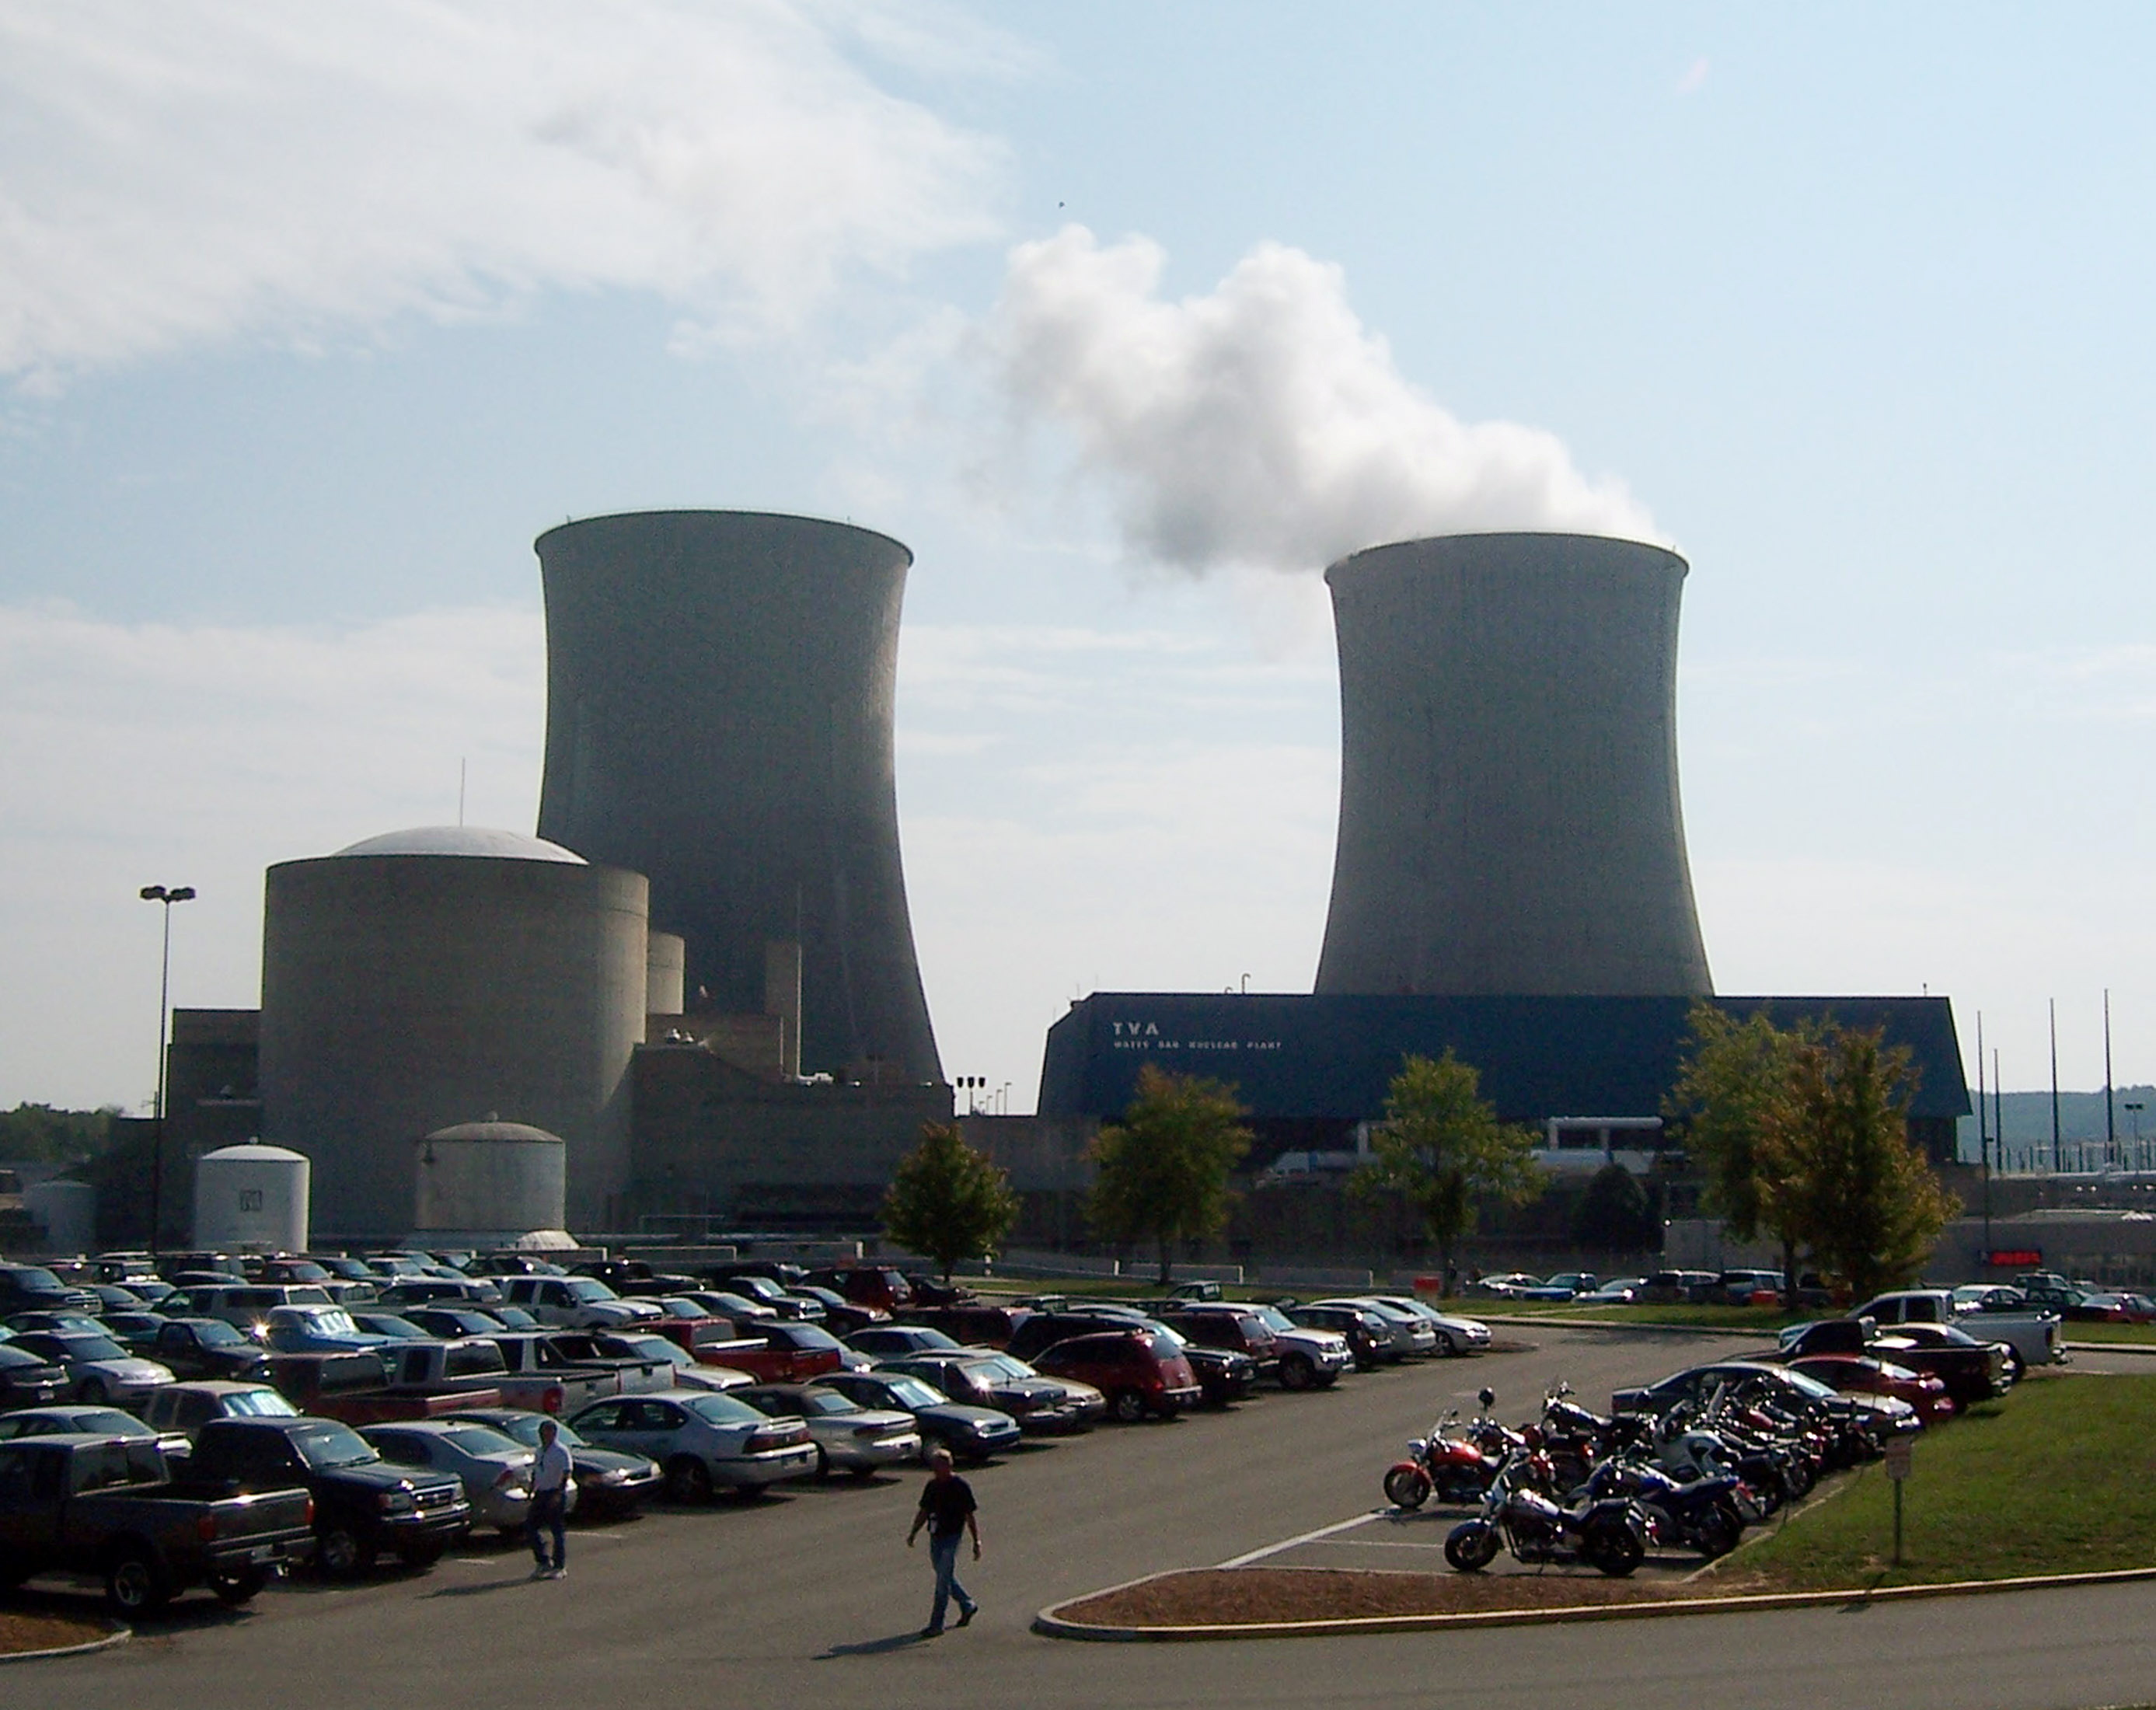 File photo: Steam rises from a cooling tower on September 7, 2007 at the Tennessee Valley Authority's Watts Bar Nuclear Plant in Spring City, Tennessee, 50 miles south of Knoxville. REUTERS/Chris Baltimore